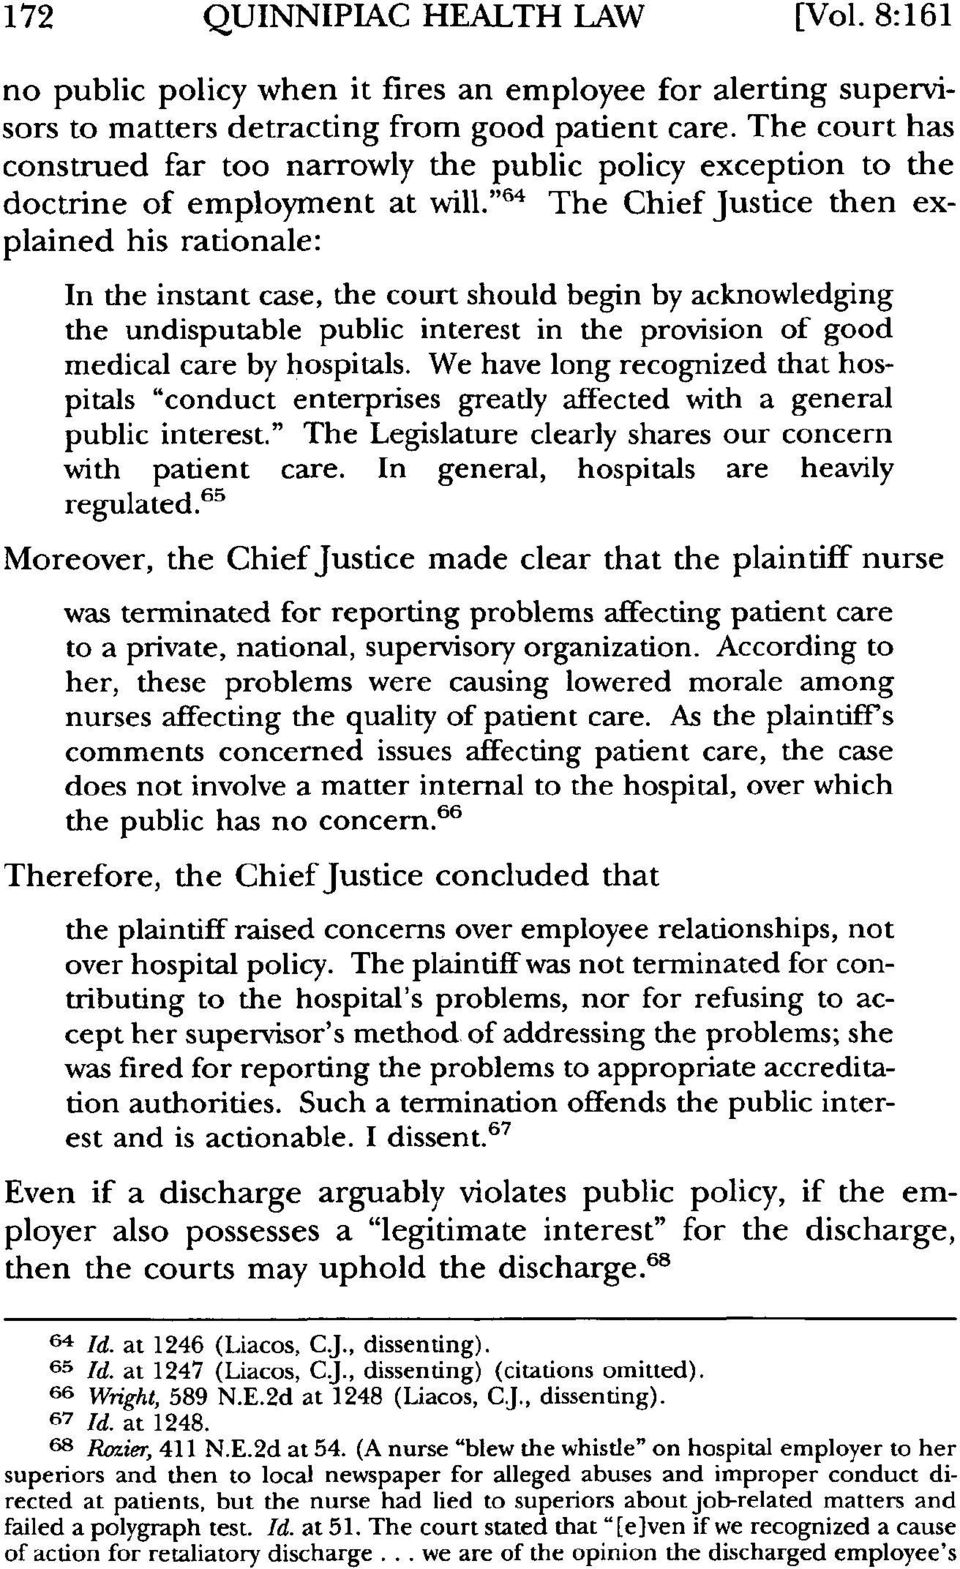 """ '64 The Chief Justice then explained his rationale: In the instant case, the court should begin by acknowledging the undisputable public interest in the provision of good medical care by hospitals."